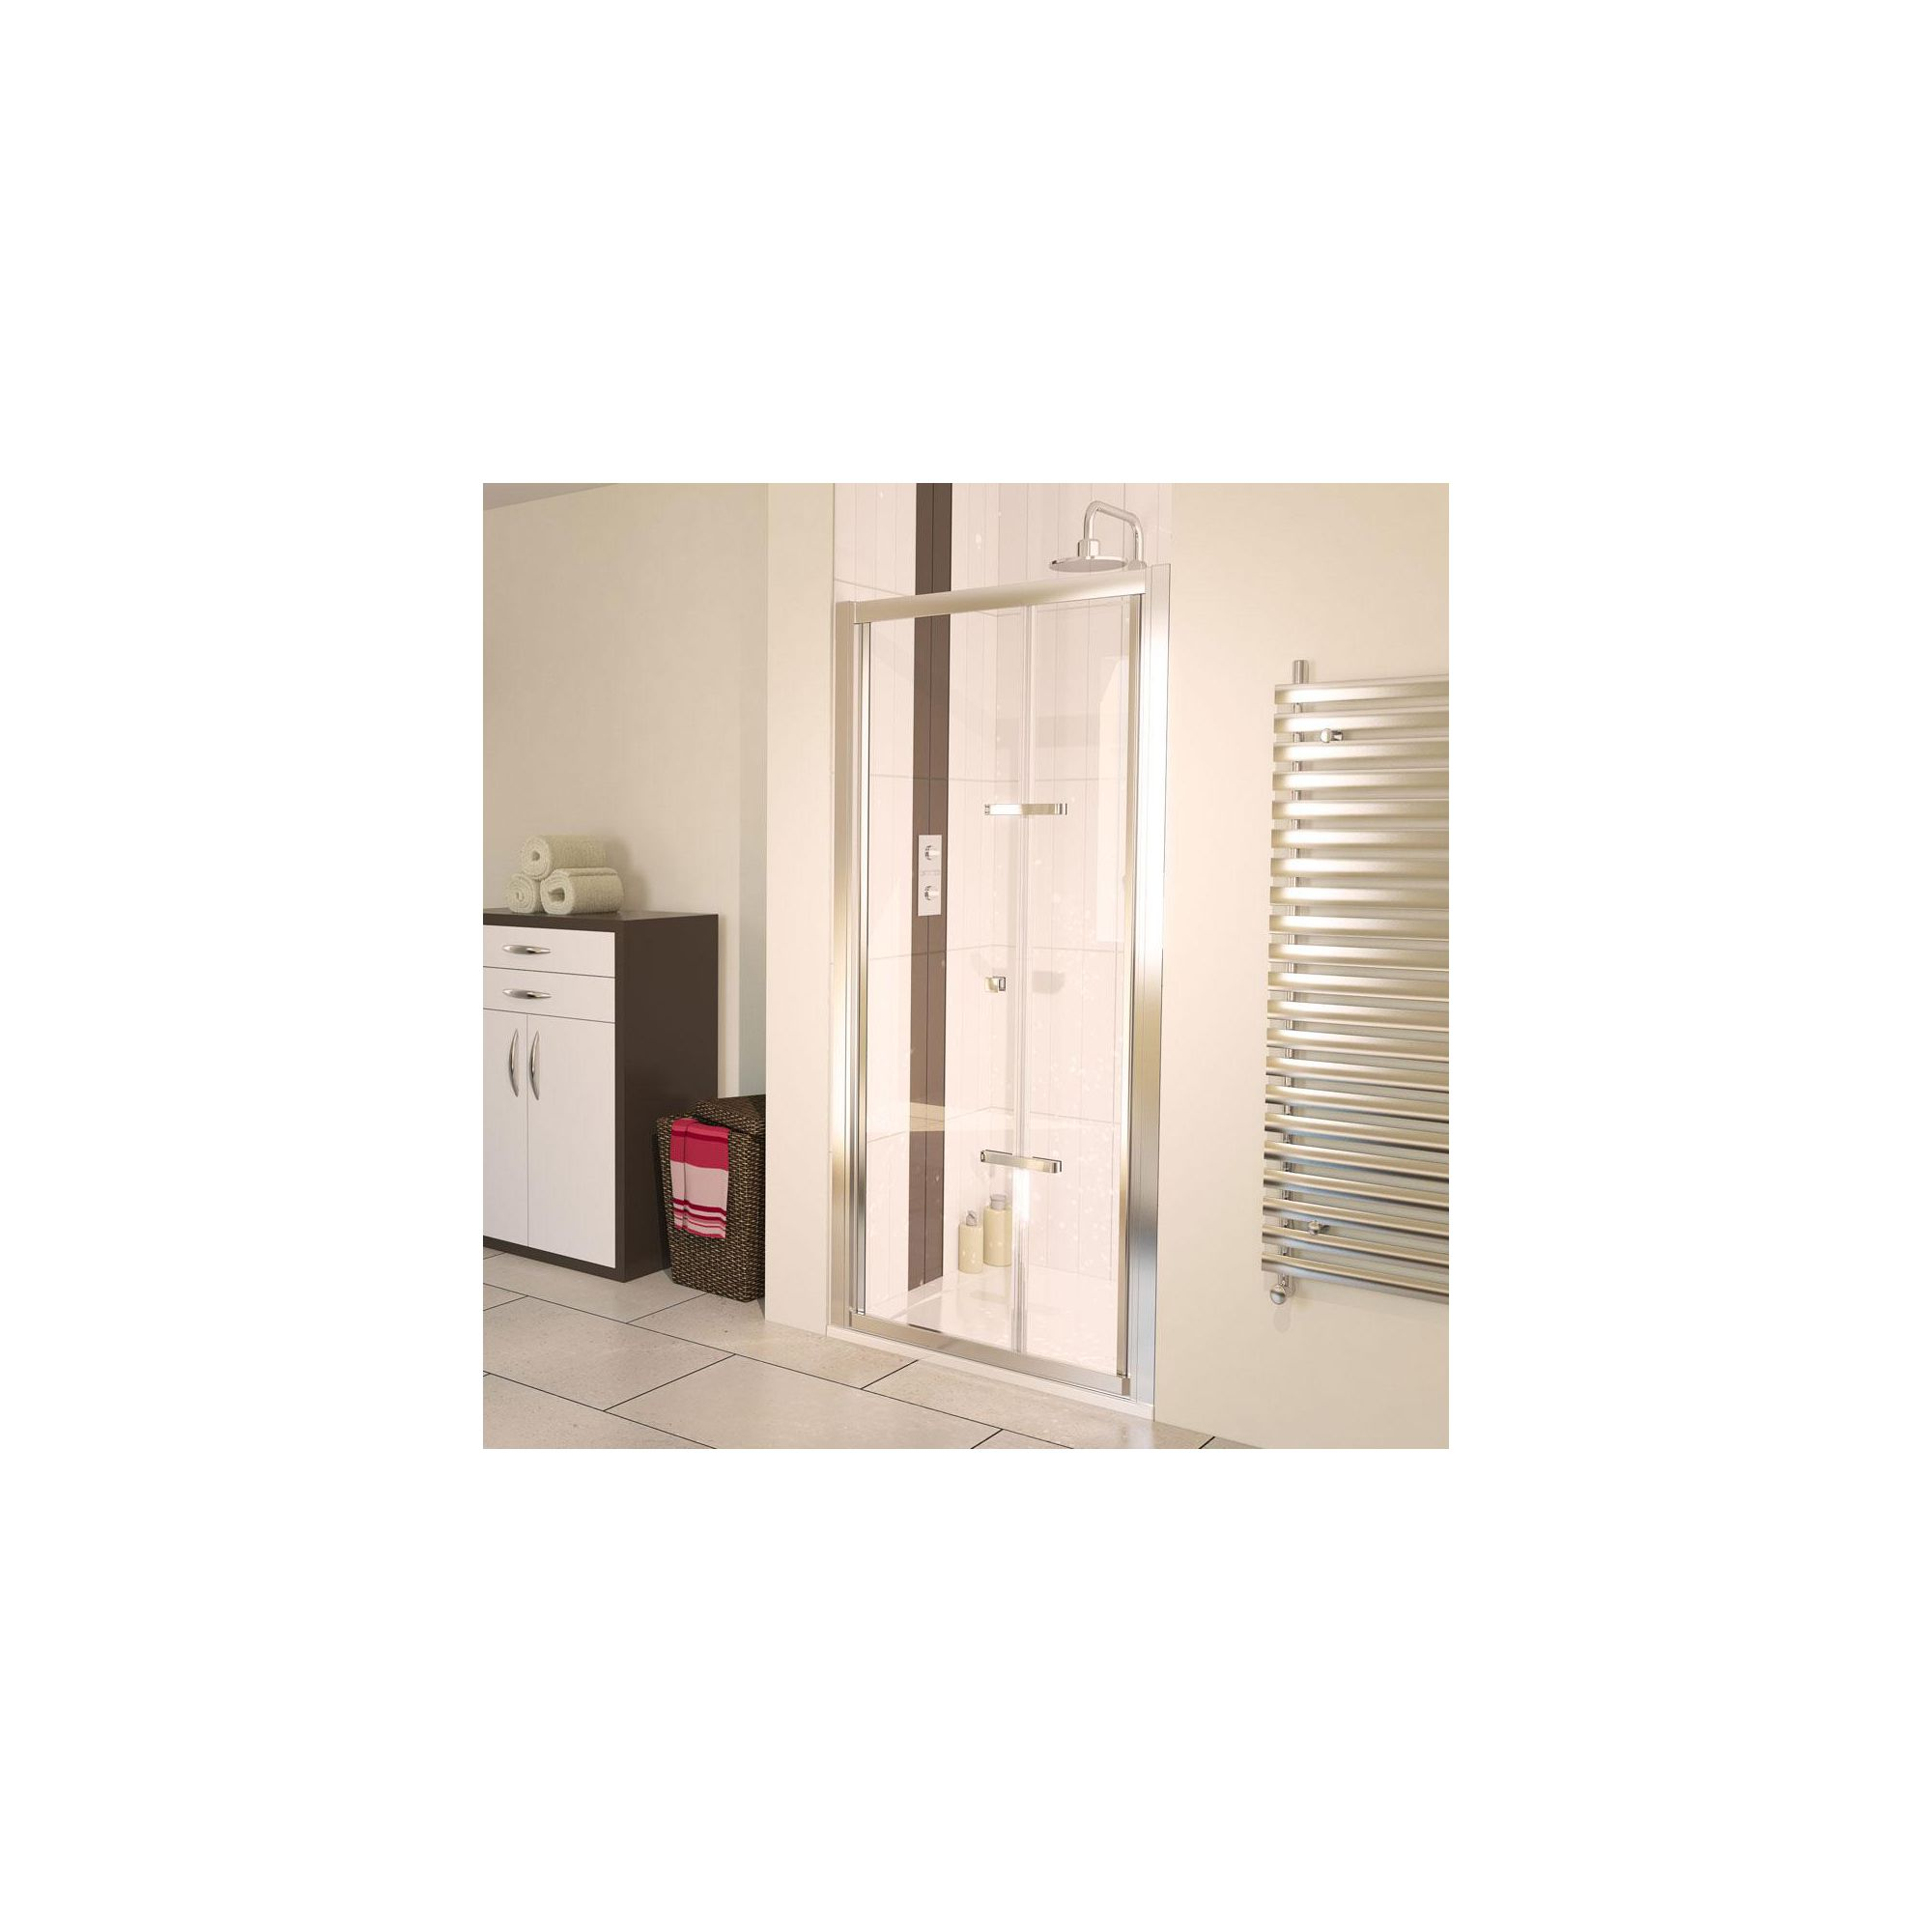 Aqualux AQUA6 Sliding Shower Door, 1700mm Wide, Polished Silver Frame, 6mm Glass at Tesco Direct